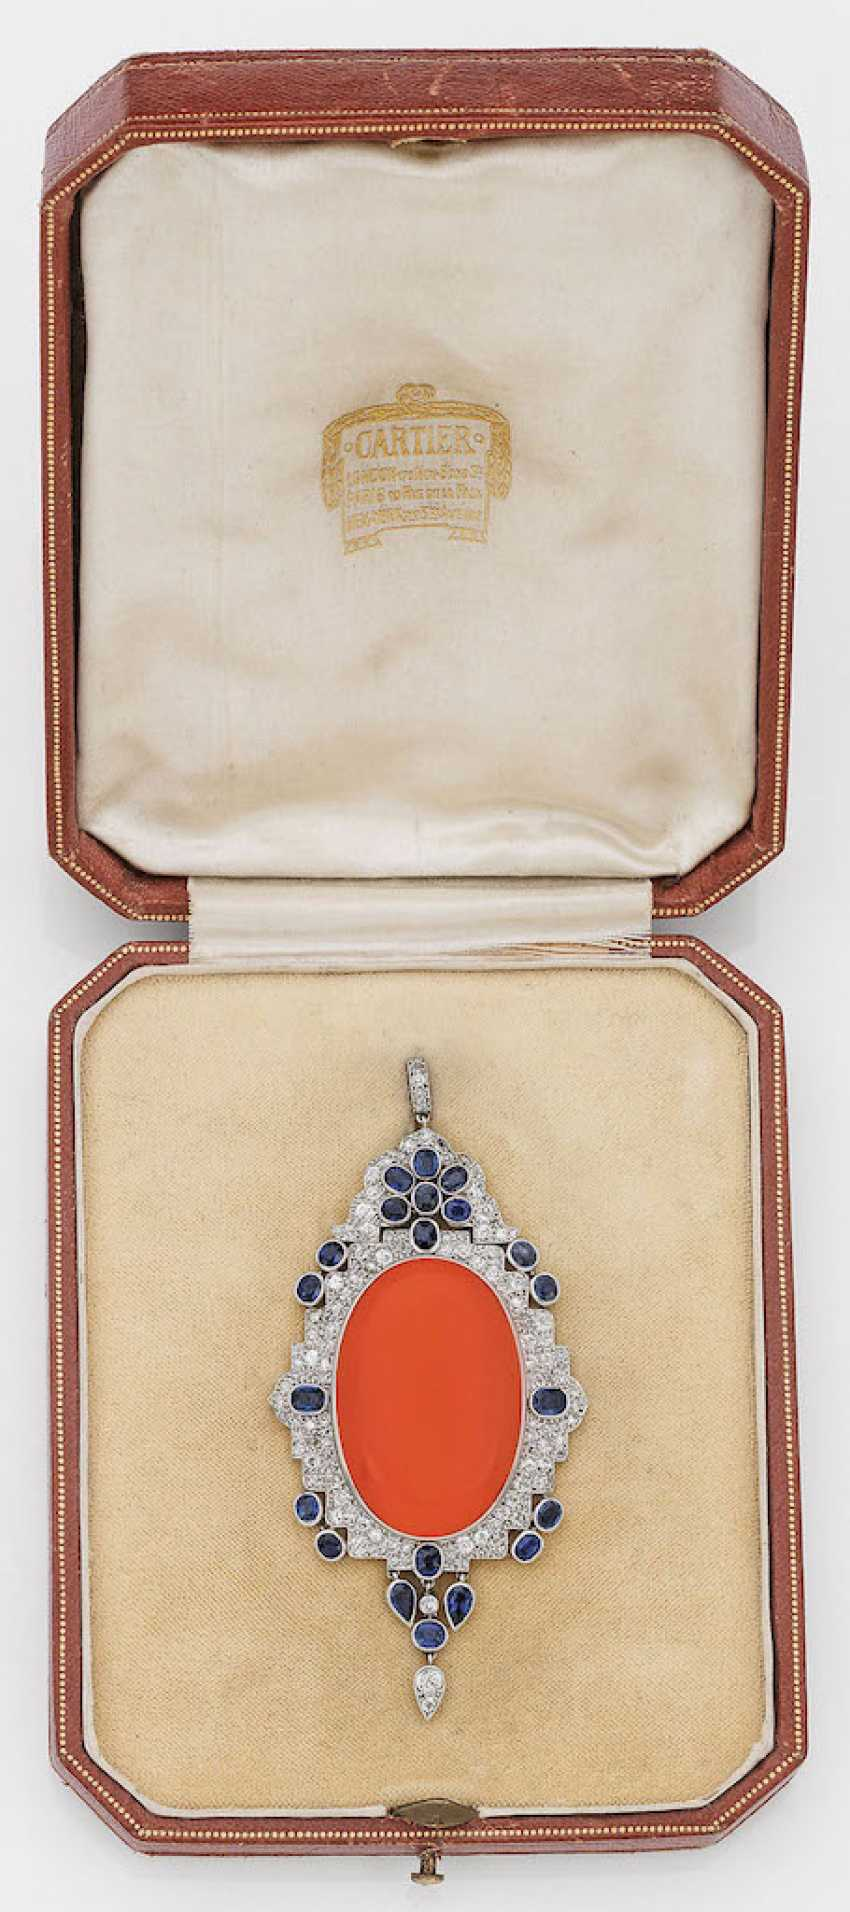 e6156751e70a6 Lot 1127. Extravagant Art Deco brooch pendant by Cartier from the ...